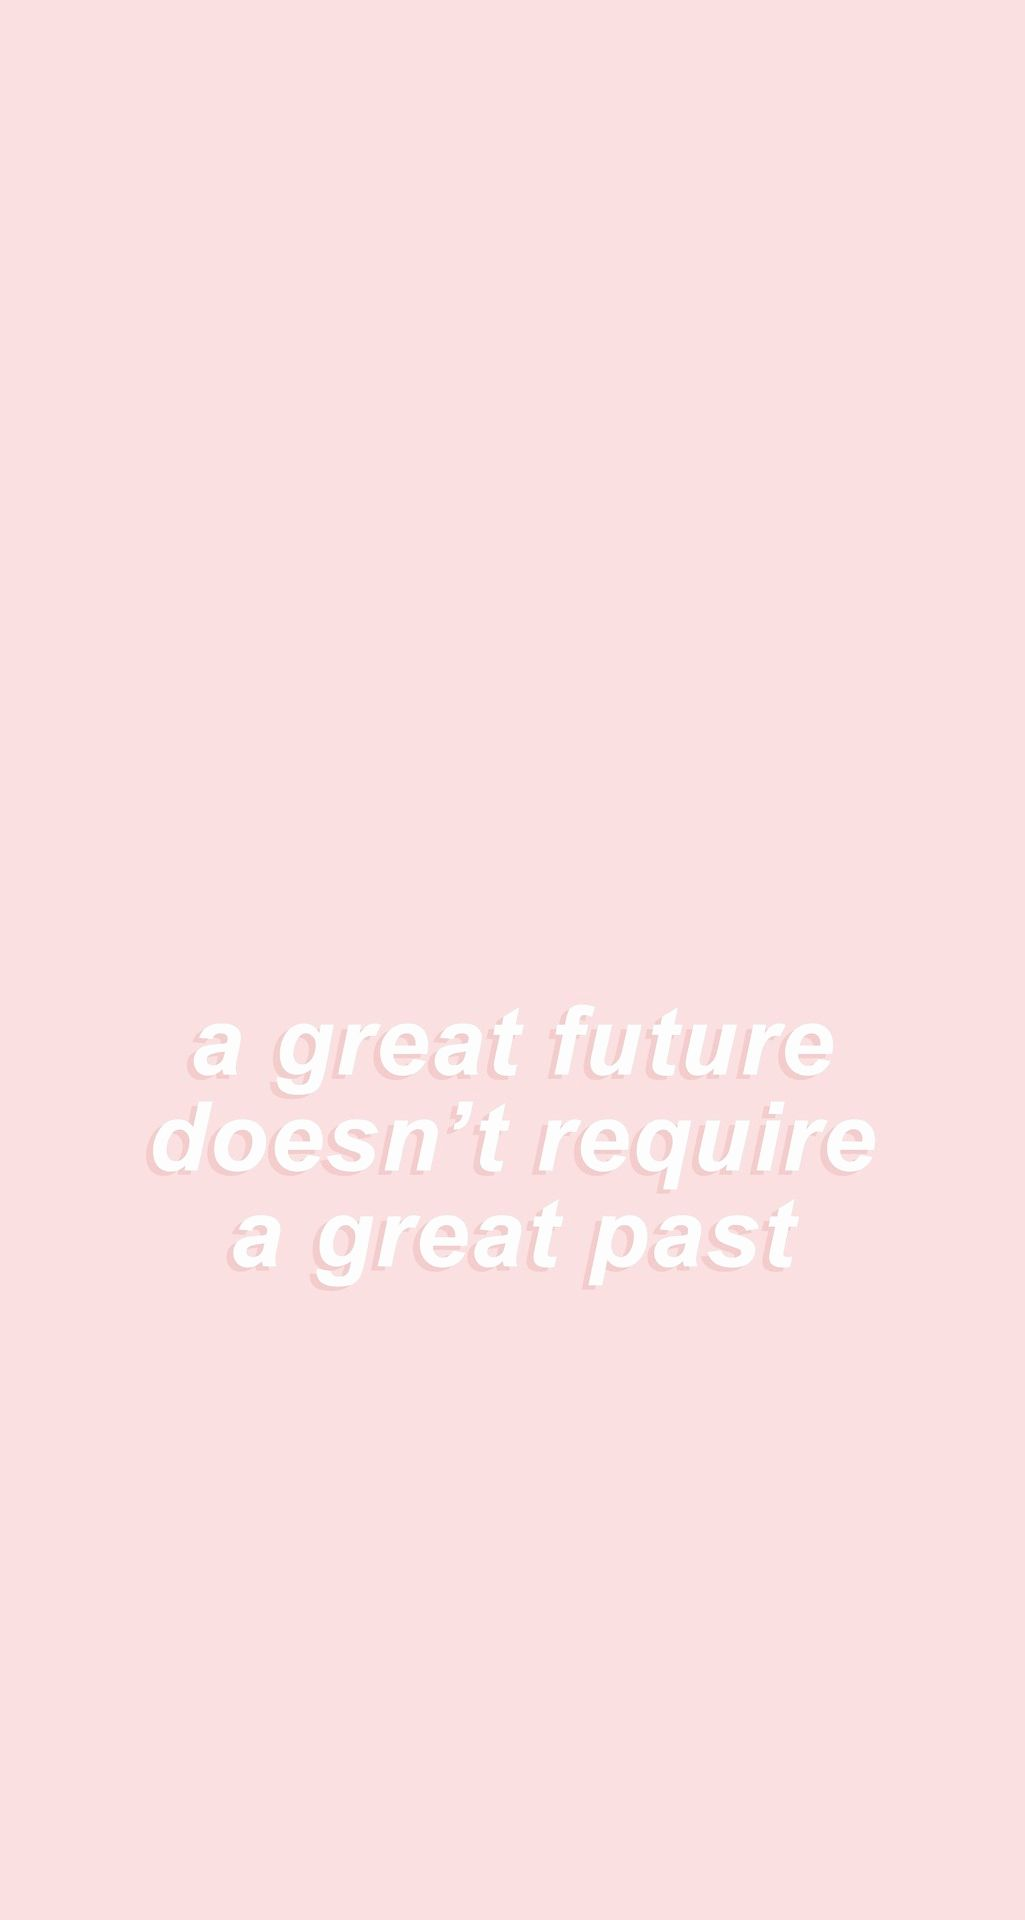 Pastel Aesthetics Quotes Wallpapers Top Free Pastel Aesthetics Quotes Backgrounds Wallpaperaccess